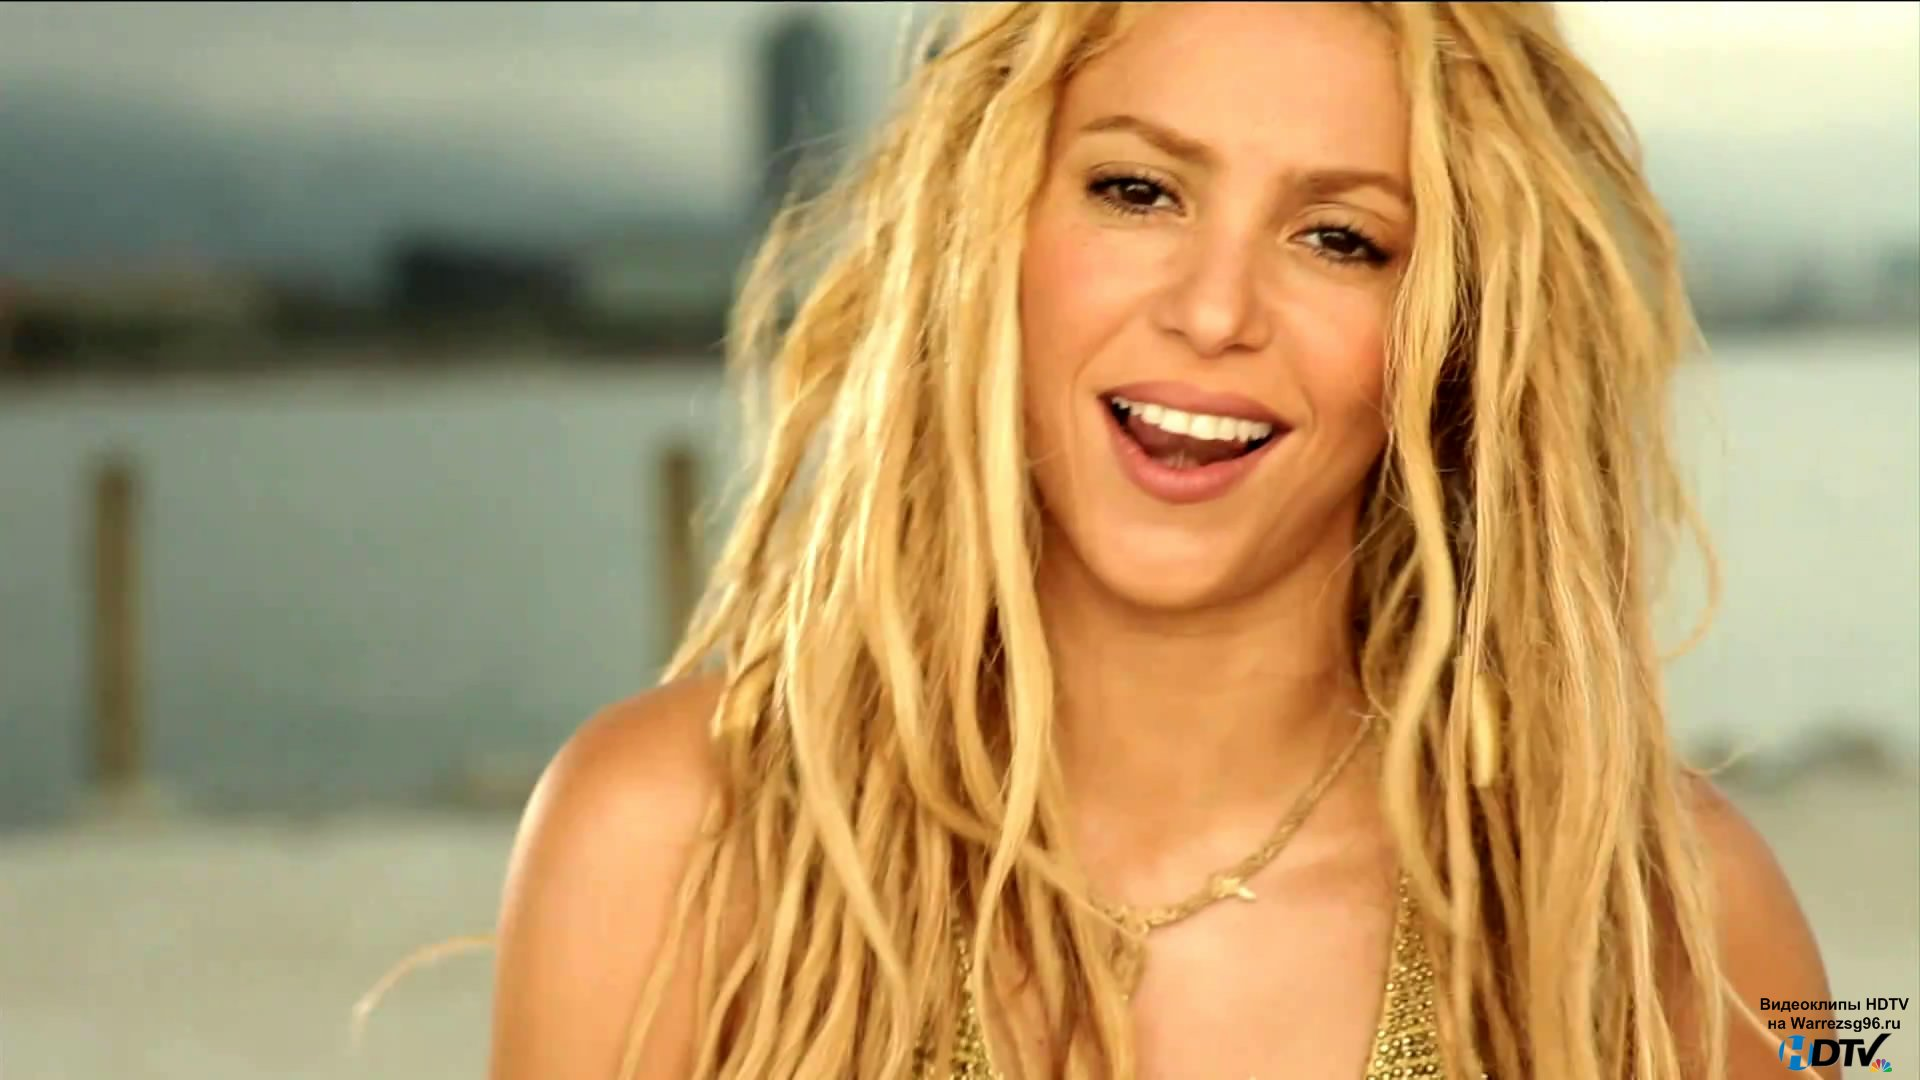 клип Shakira Loca Full Hd 1920x1080 музыкальные